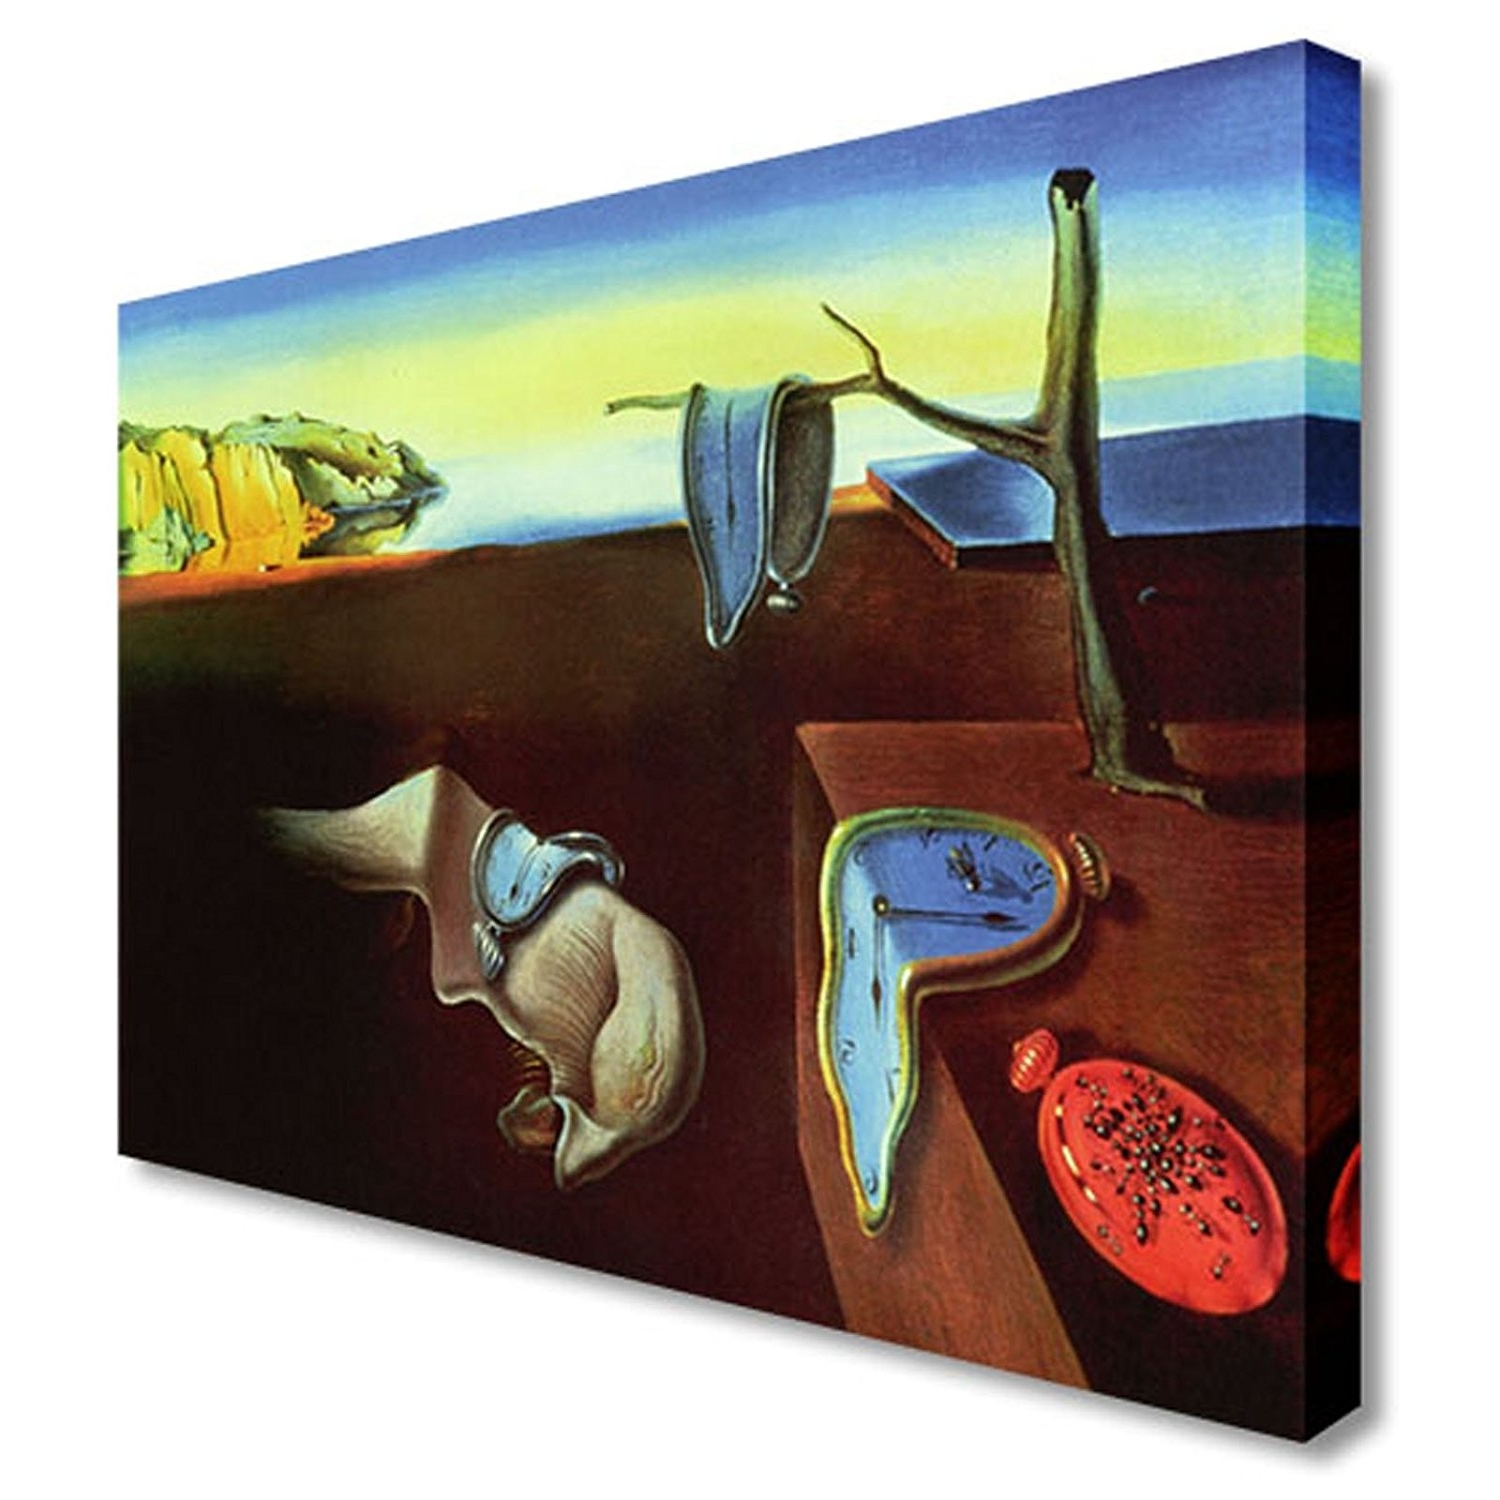 Salvador Dali Wall Art Intended For Current Salvador Dali – The Persistence Of Memory Canvas Art Cheap Print (View 8 of 15)